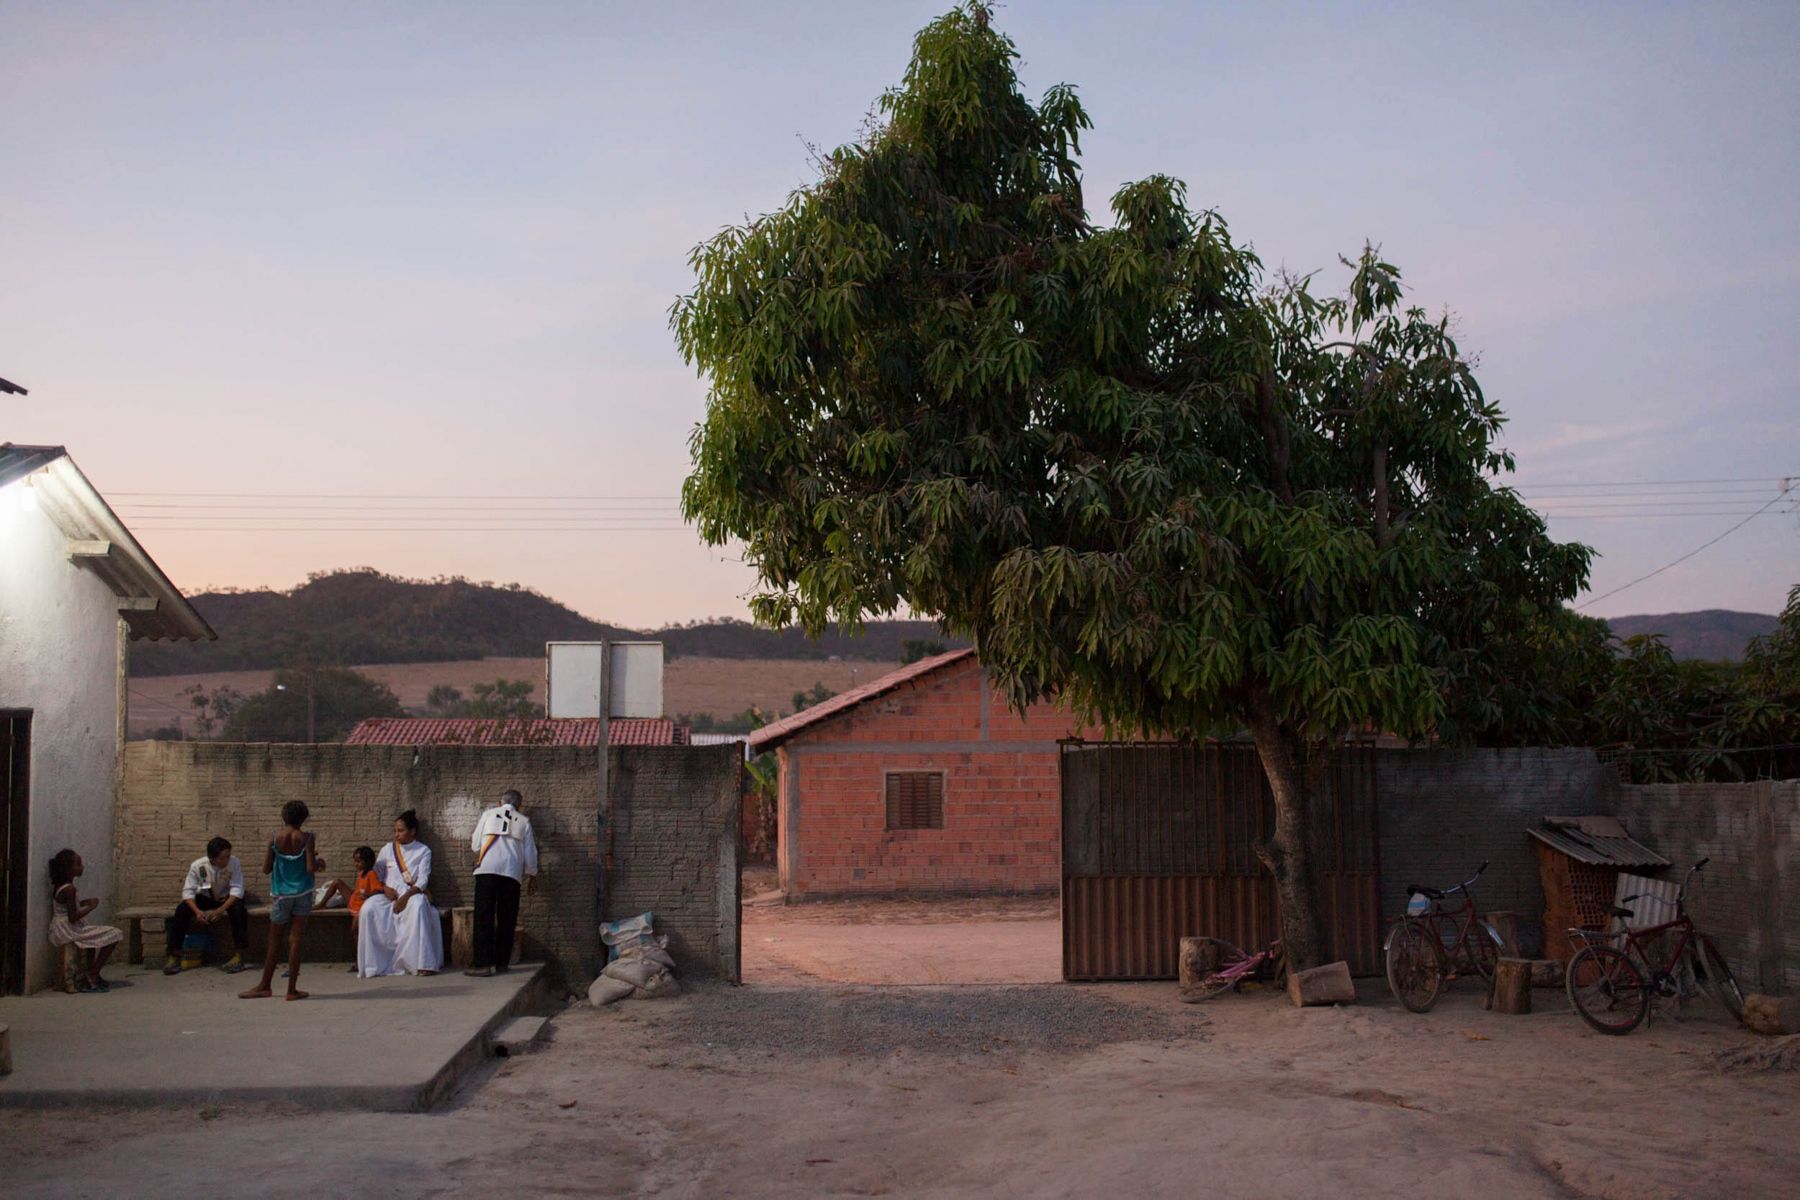 · Devotees hang out in the patio at dusk during a break. The temple is in a big lot which they have been fixing up for the past seventeen years. Cavalcante do Goais, 2015. //  · Devotos toman una pausa para un cafecito en el atardecer en el patio del templo. El templo se encuentra en un terreno grande y este ha estado en processo construcción durante los ultimos 17 años. Cavalcante do Goais, 2015.